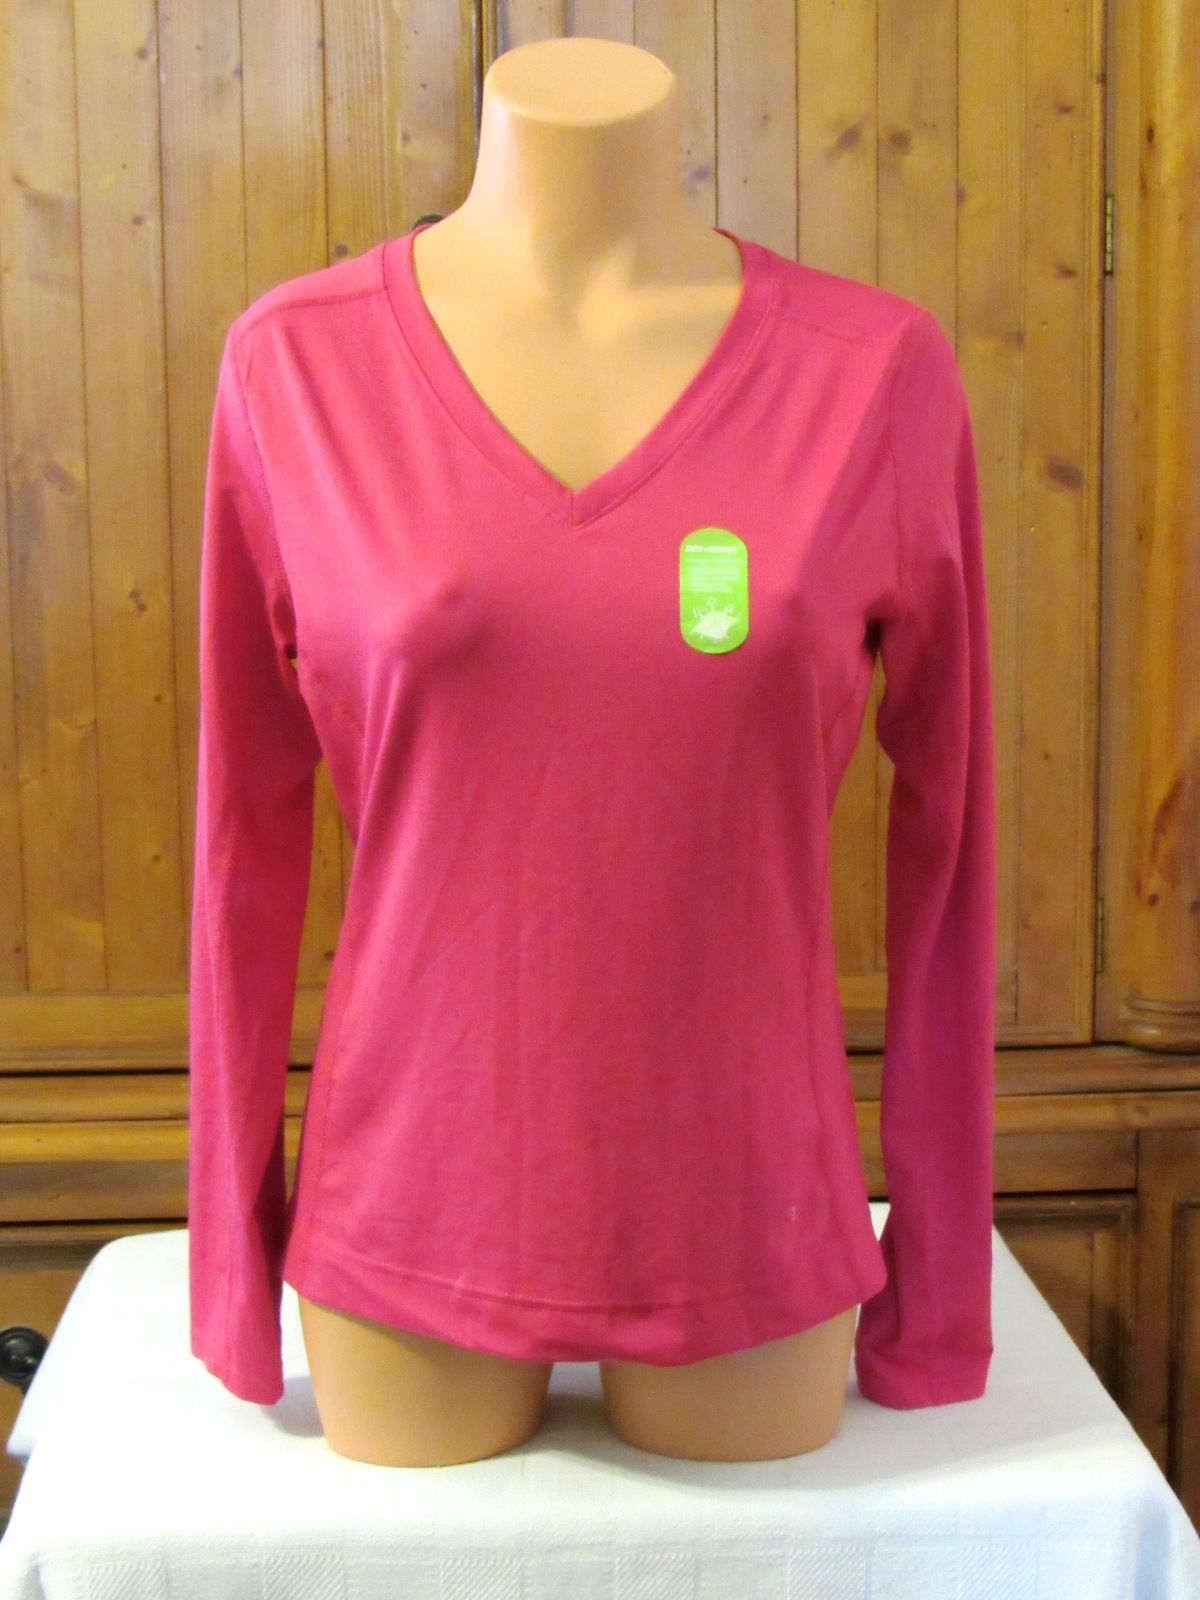 Athletic Works Women Long Sleeve Moisture Wicking Athletic Shirt S: L/G (12/14)